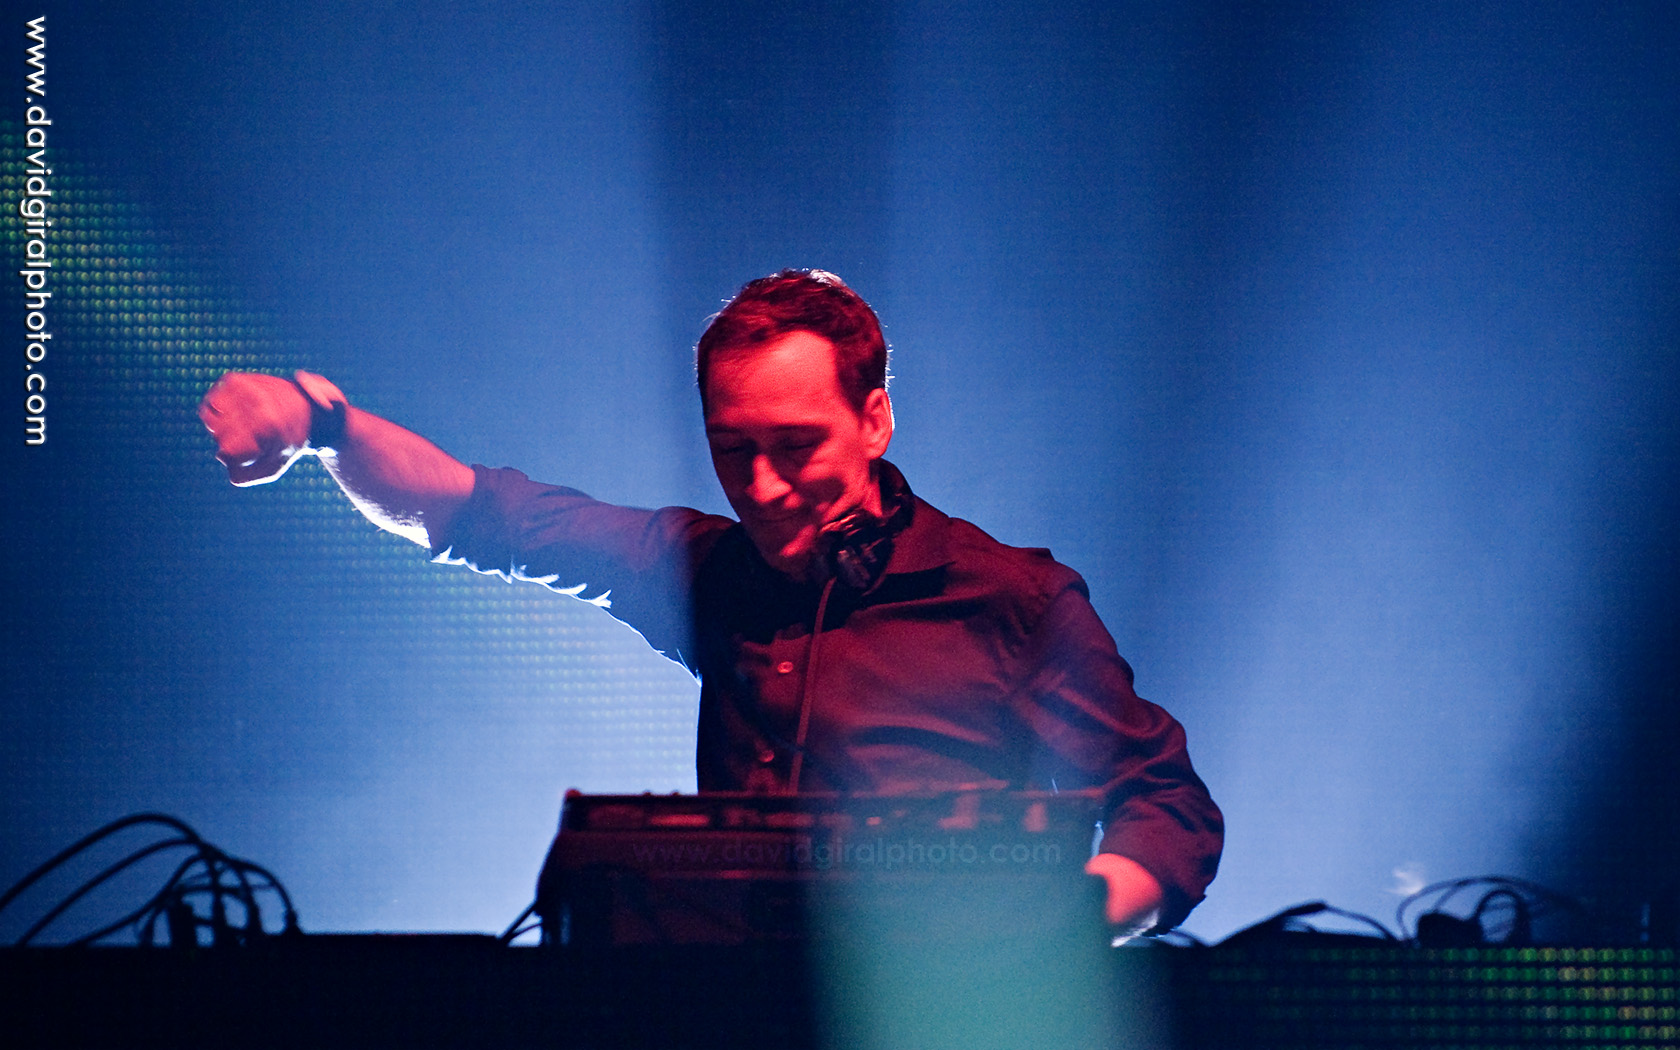 TOP DJs: Paul Van Dyk at Resolution 2010 Montreal